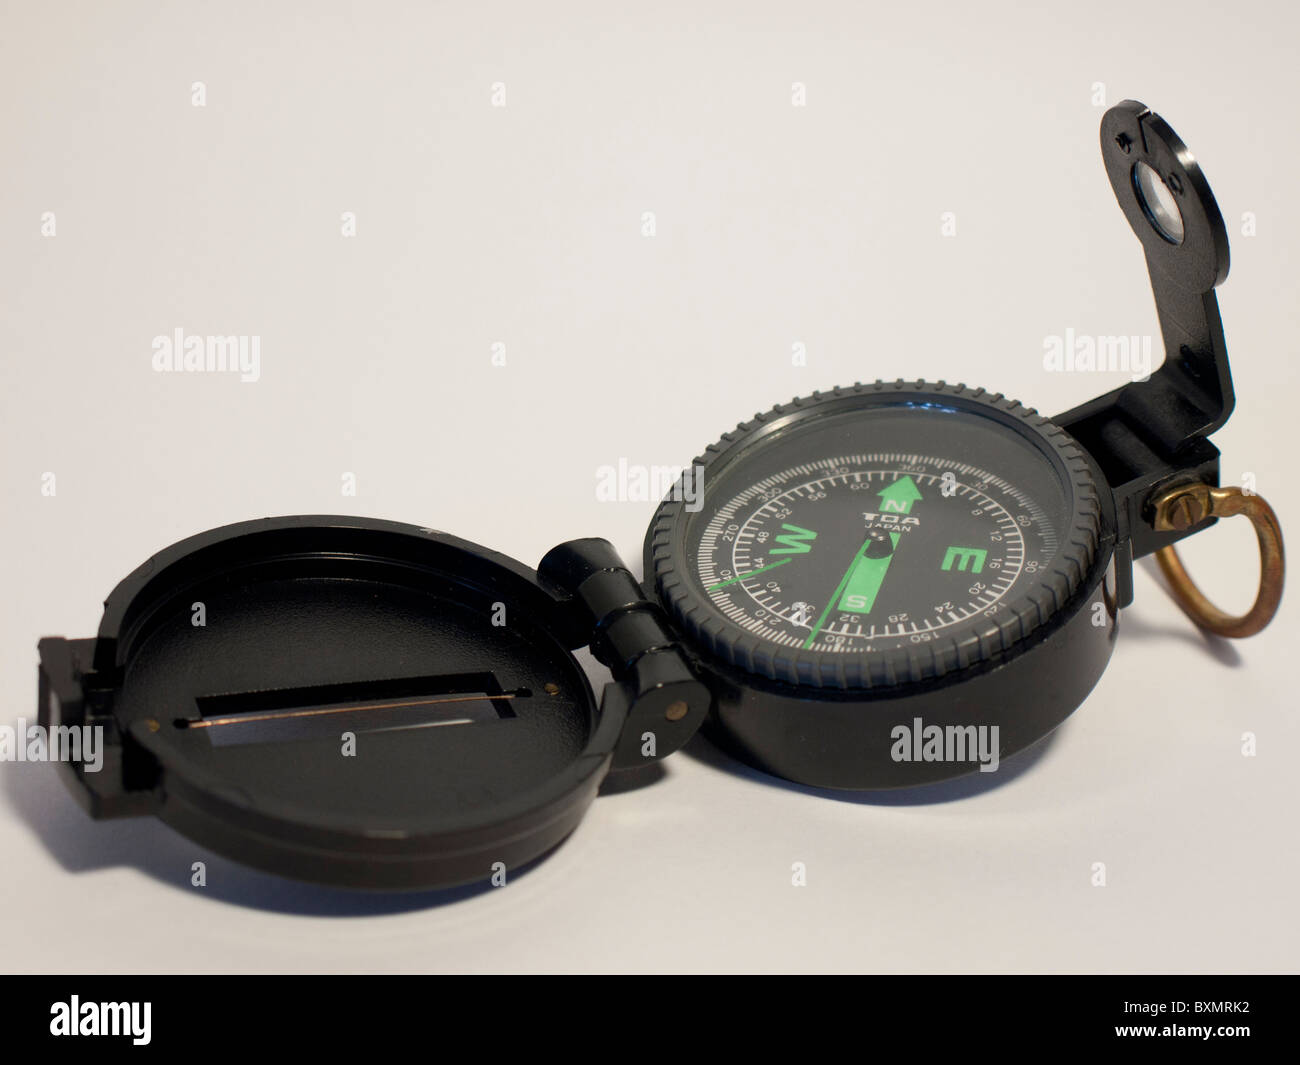 TOA lensatic fluid compass with lid cover - Stock Image